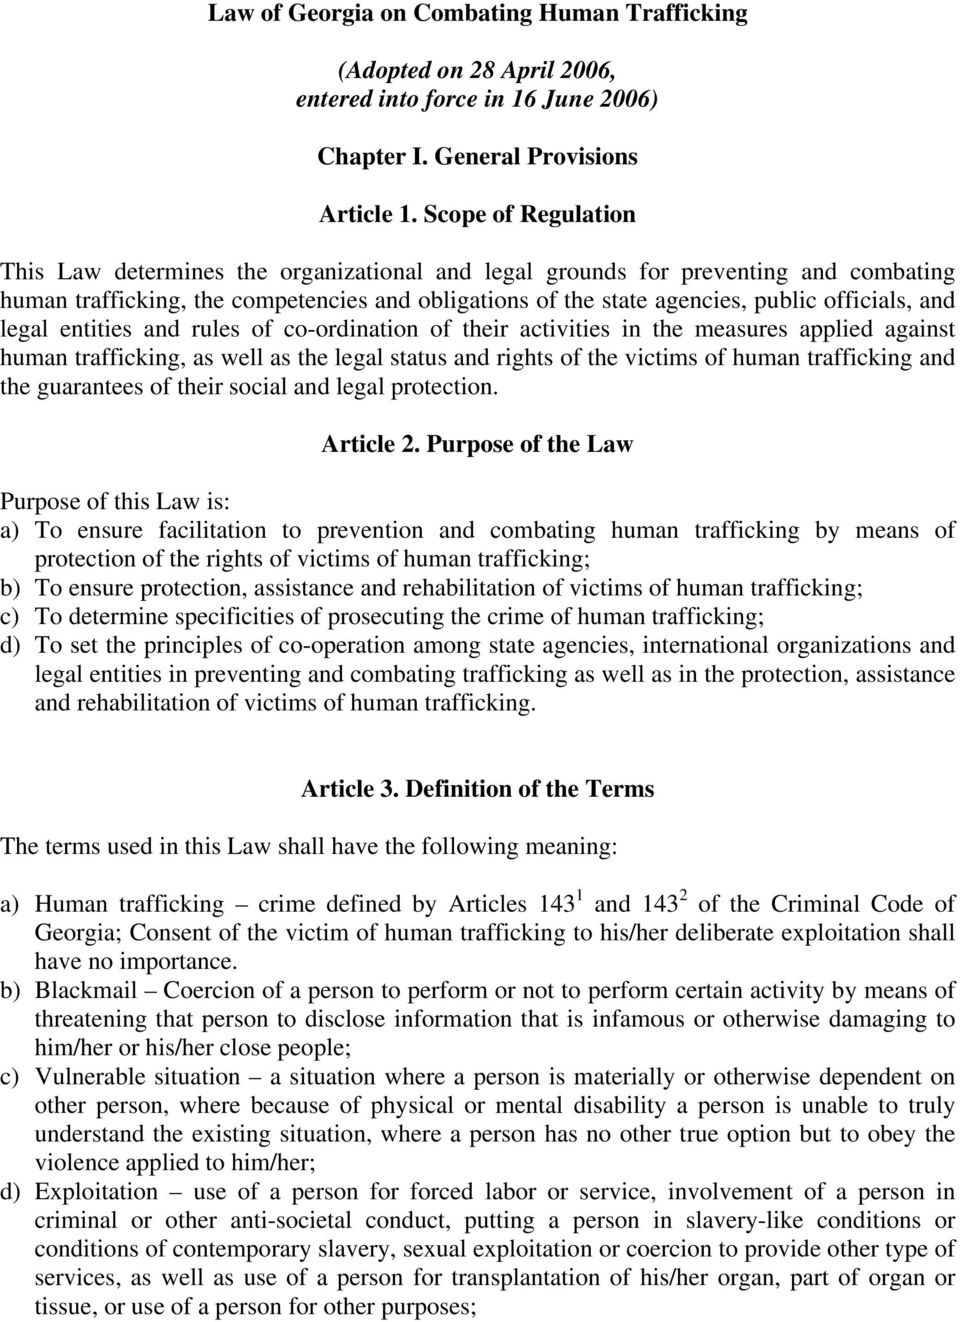 and legal entities and rules of co-ordination of their activities in the measures applied against human trafficking, as well as the legal status and rights of the victims of human trafficking and the